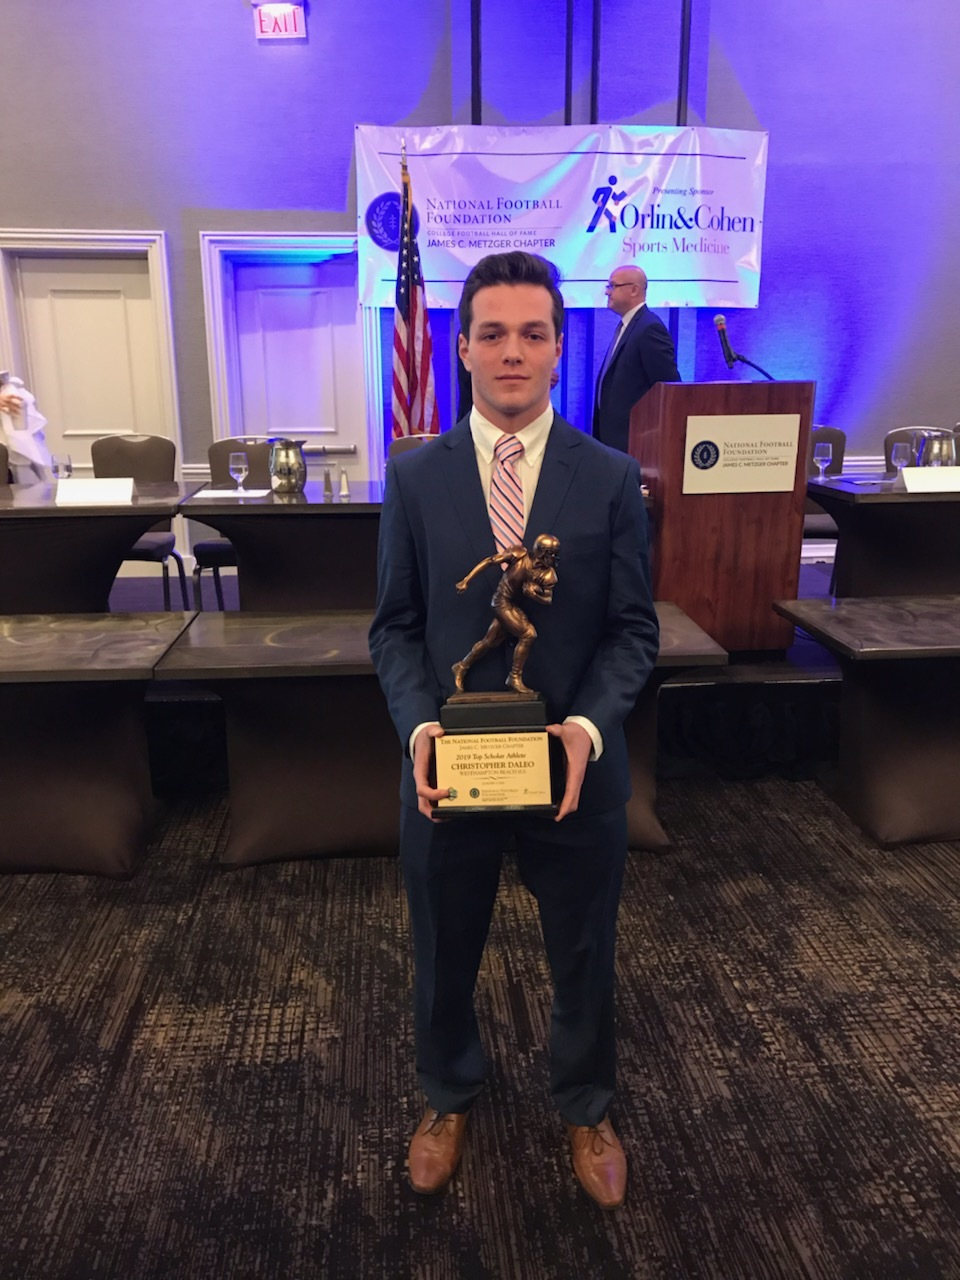 Chris Daleo of Westhampton Beach was given the James C. Metzger Award as the top academic football player in Suffolk County.